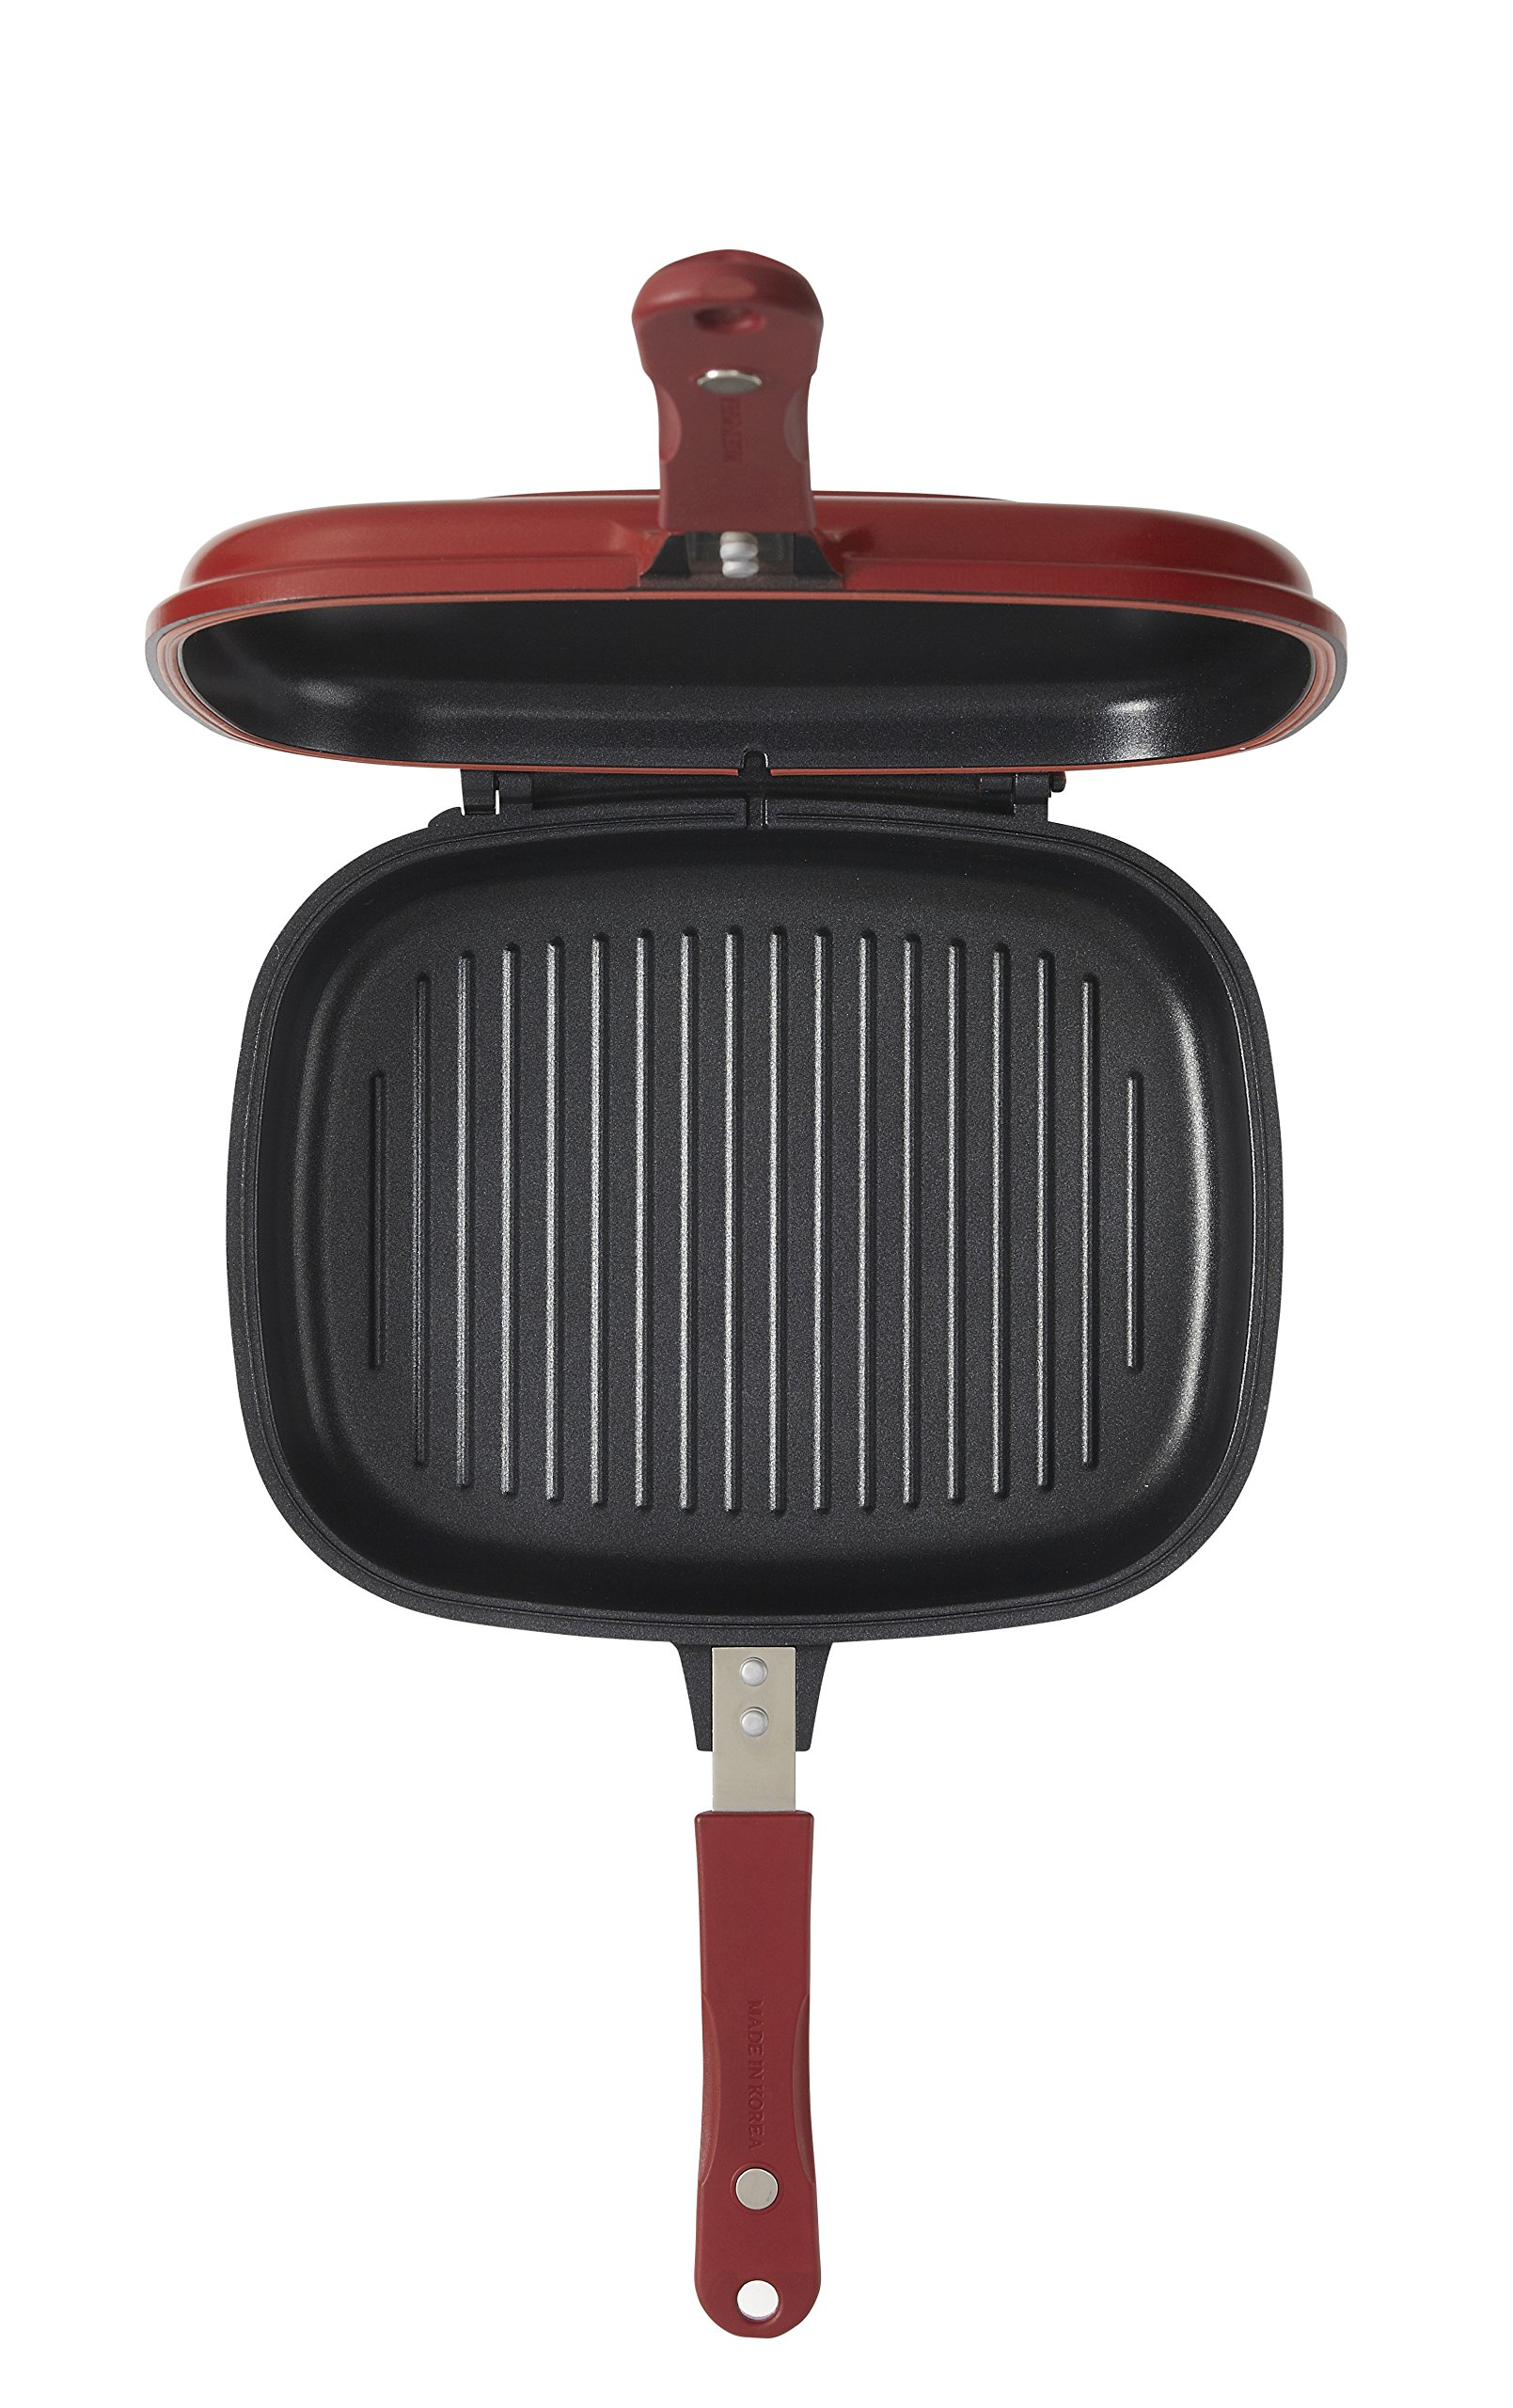 Happycall 3002-0014 Double Pan Jumbo Grill Cookware Red by Happycall (Image #4)